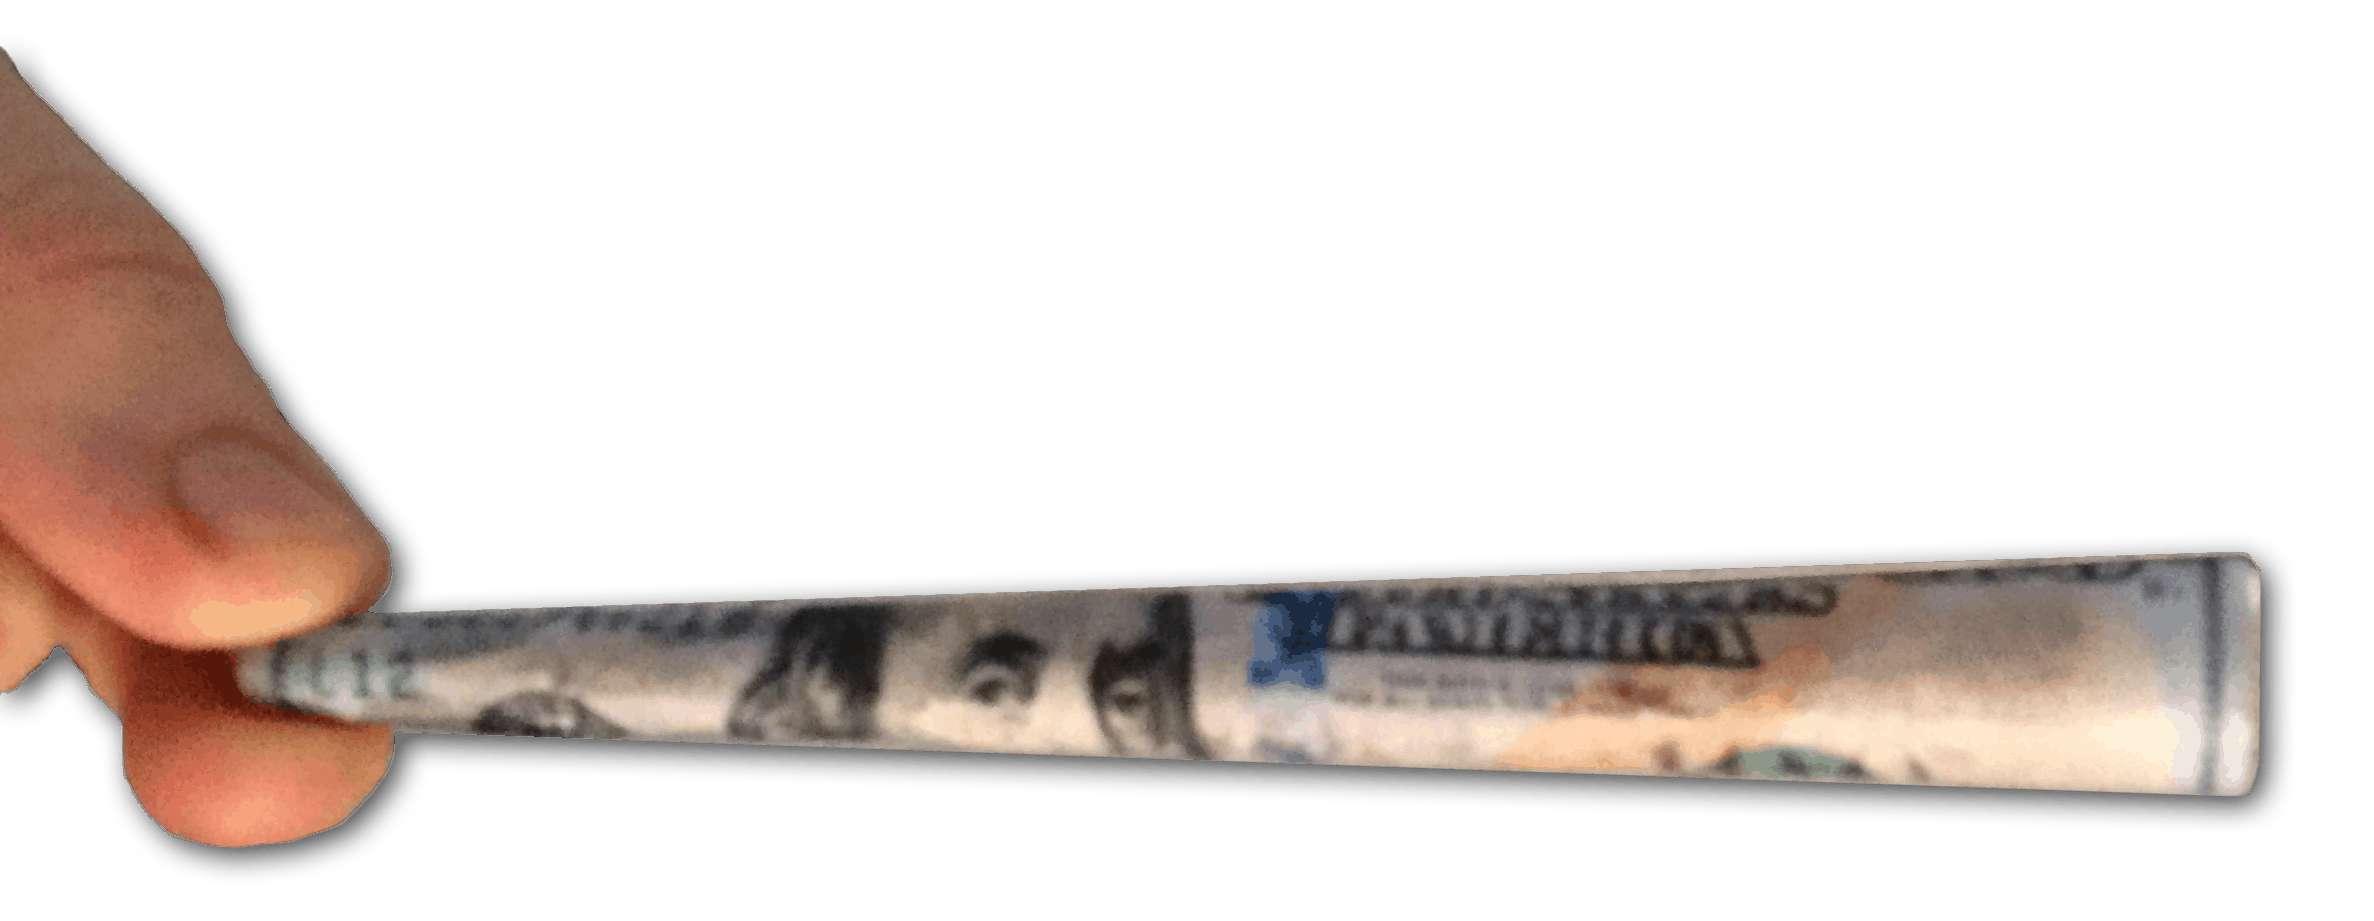 100 bill cartel rolling papers joint